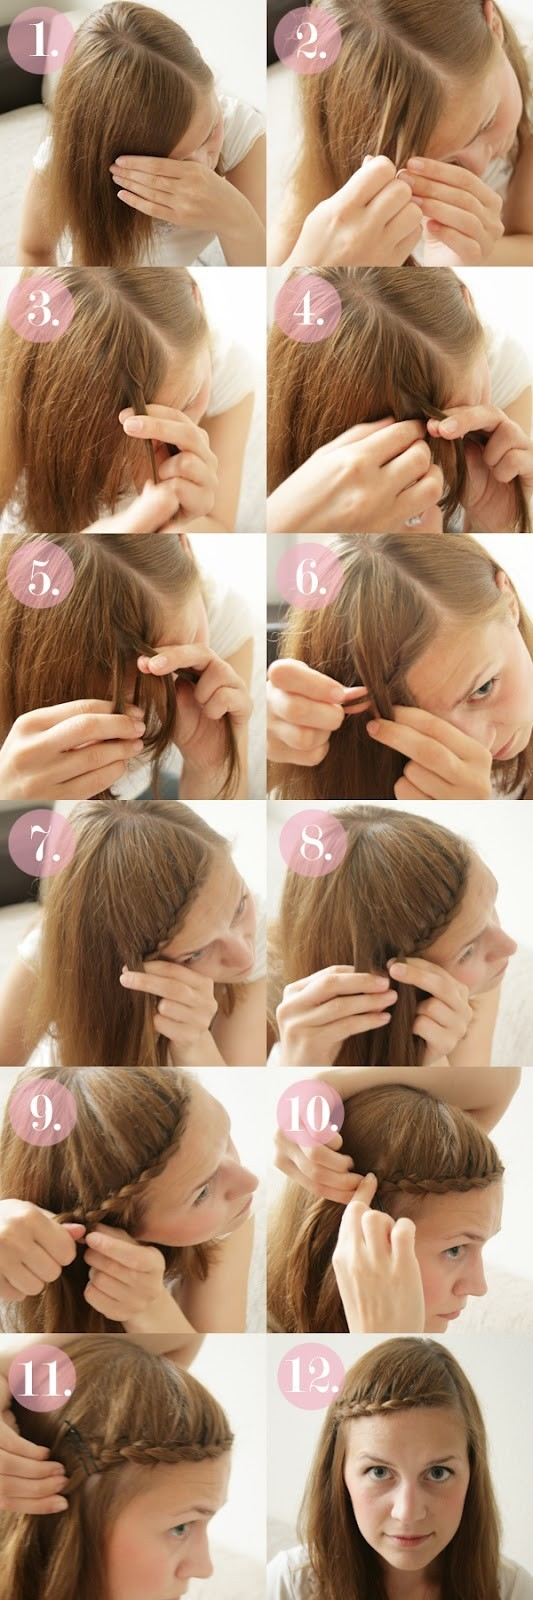 Awe Inspiring 15 Braided Bangs Tutorials Cute Easy Hairstyles Pretty Designs Hairstyle Inspiration Daily Dogsangcom